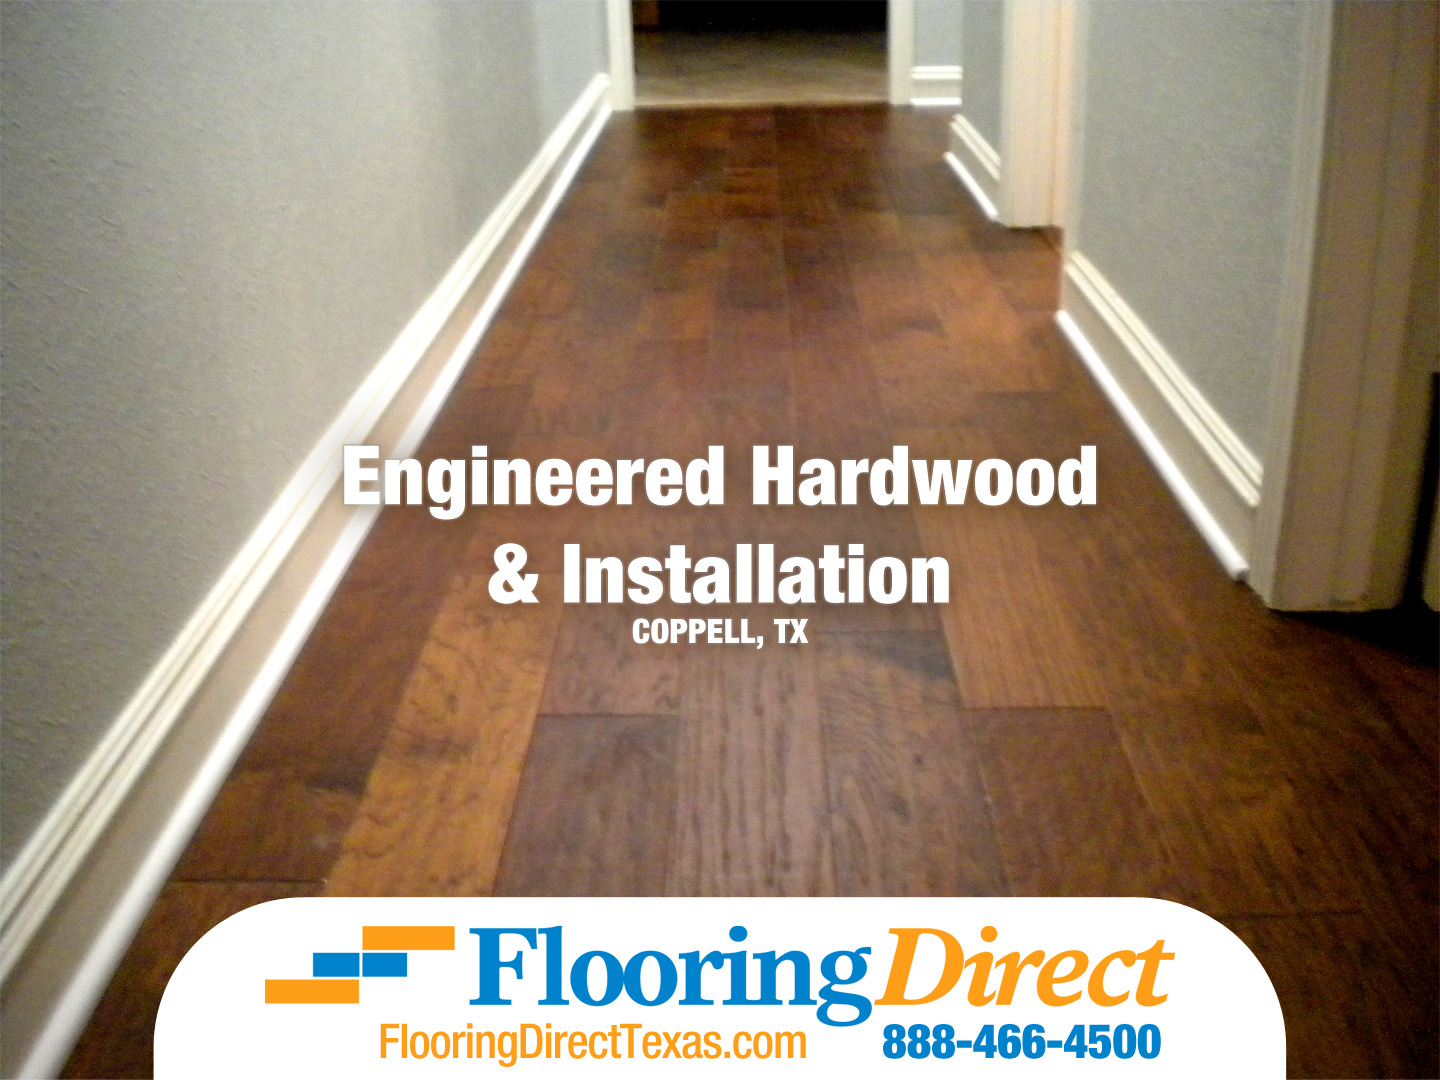 Engineered Hardwood And Installation Coppell TX Flooring Direct 888-466-4500 WS1